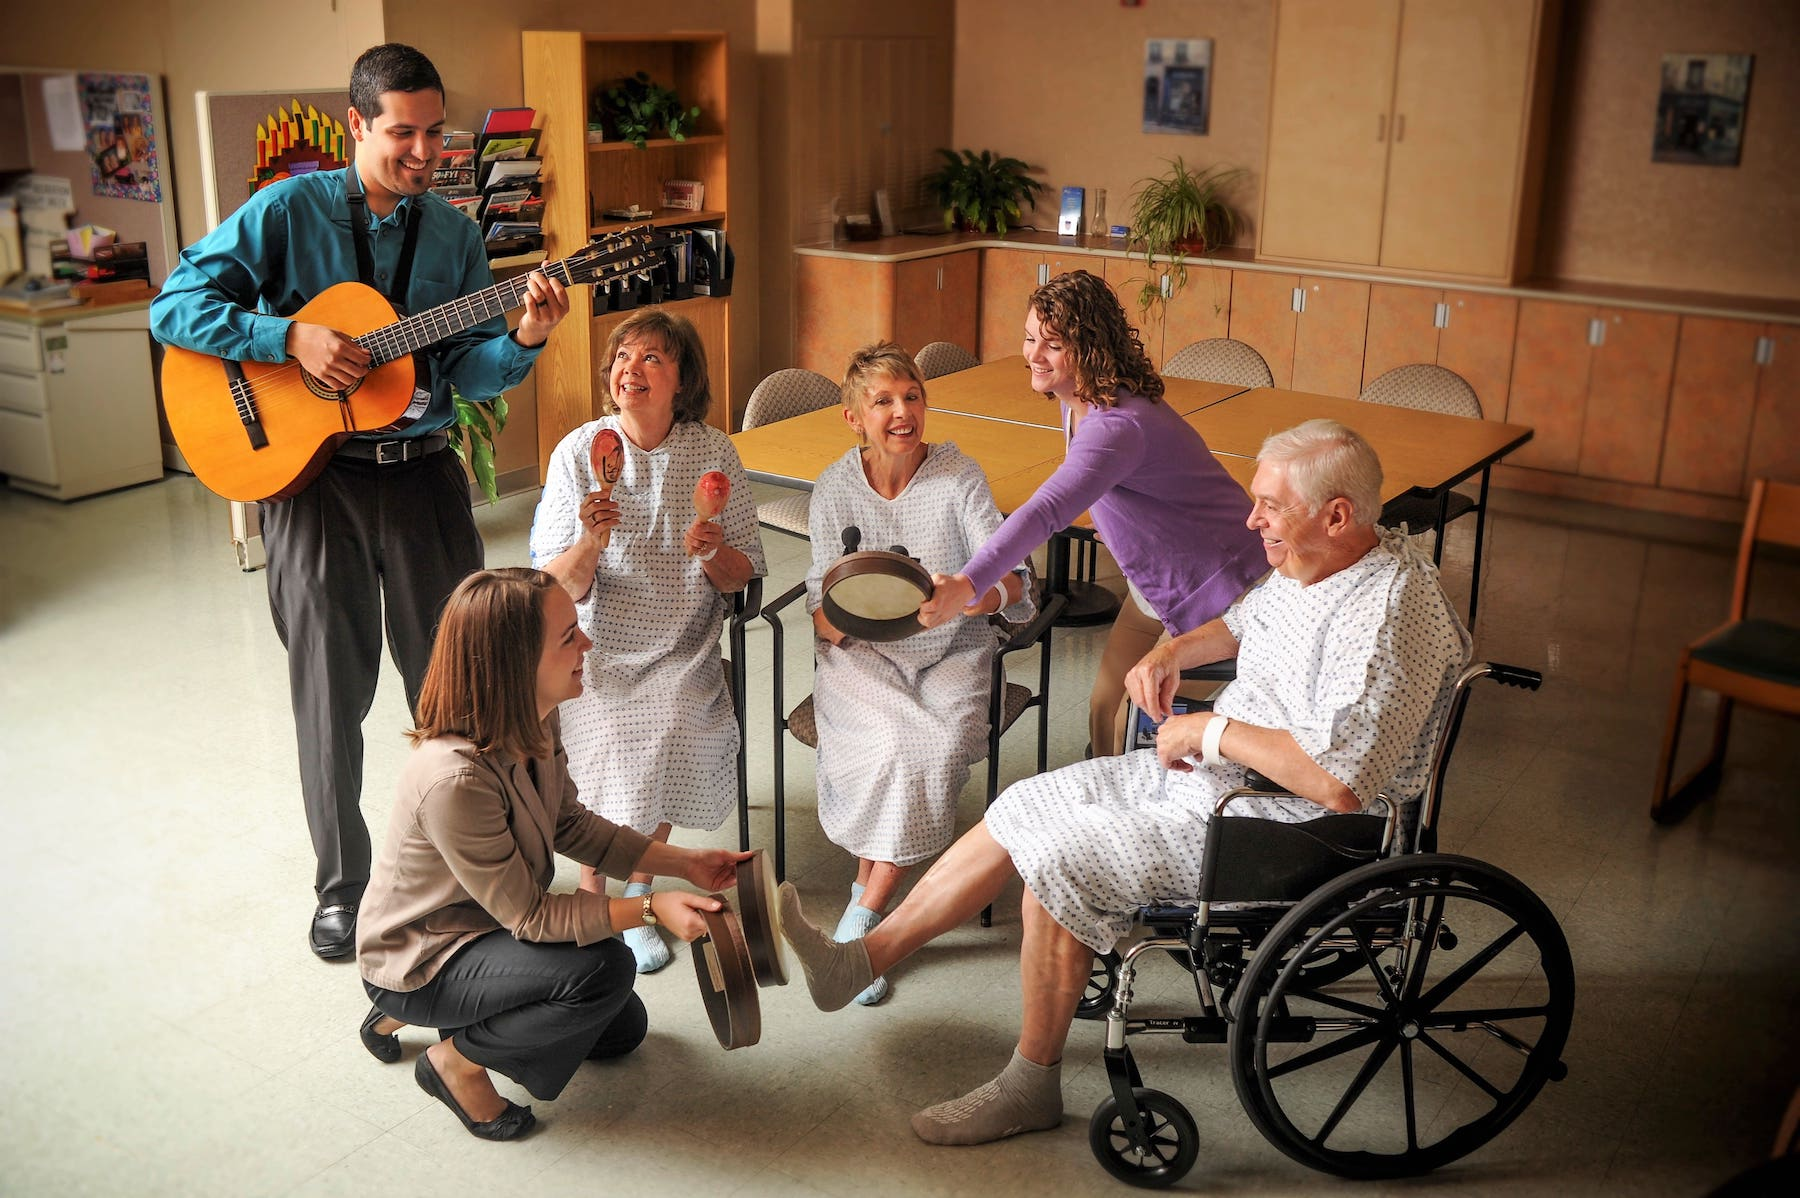 Patients at Florida Hospital enjoying music therapy healing